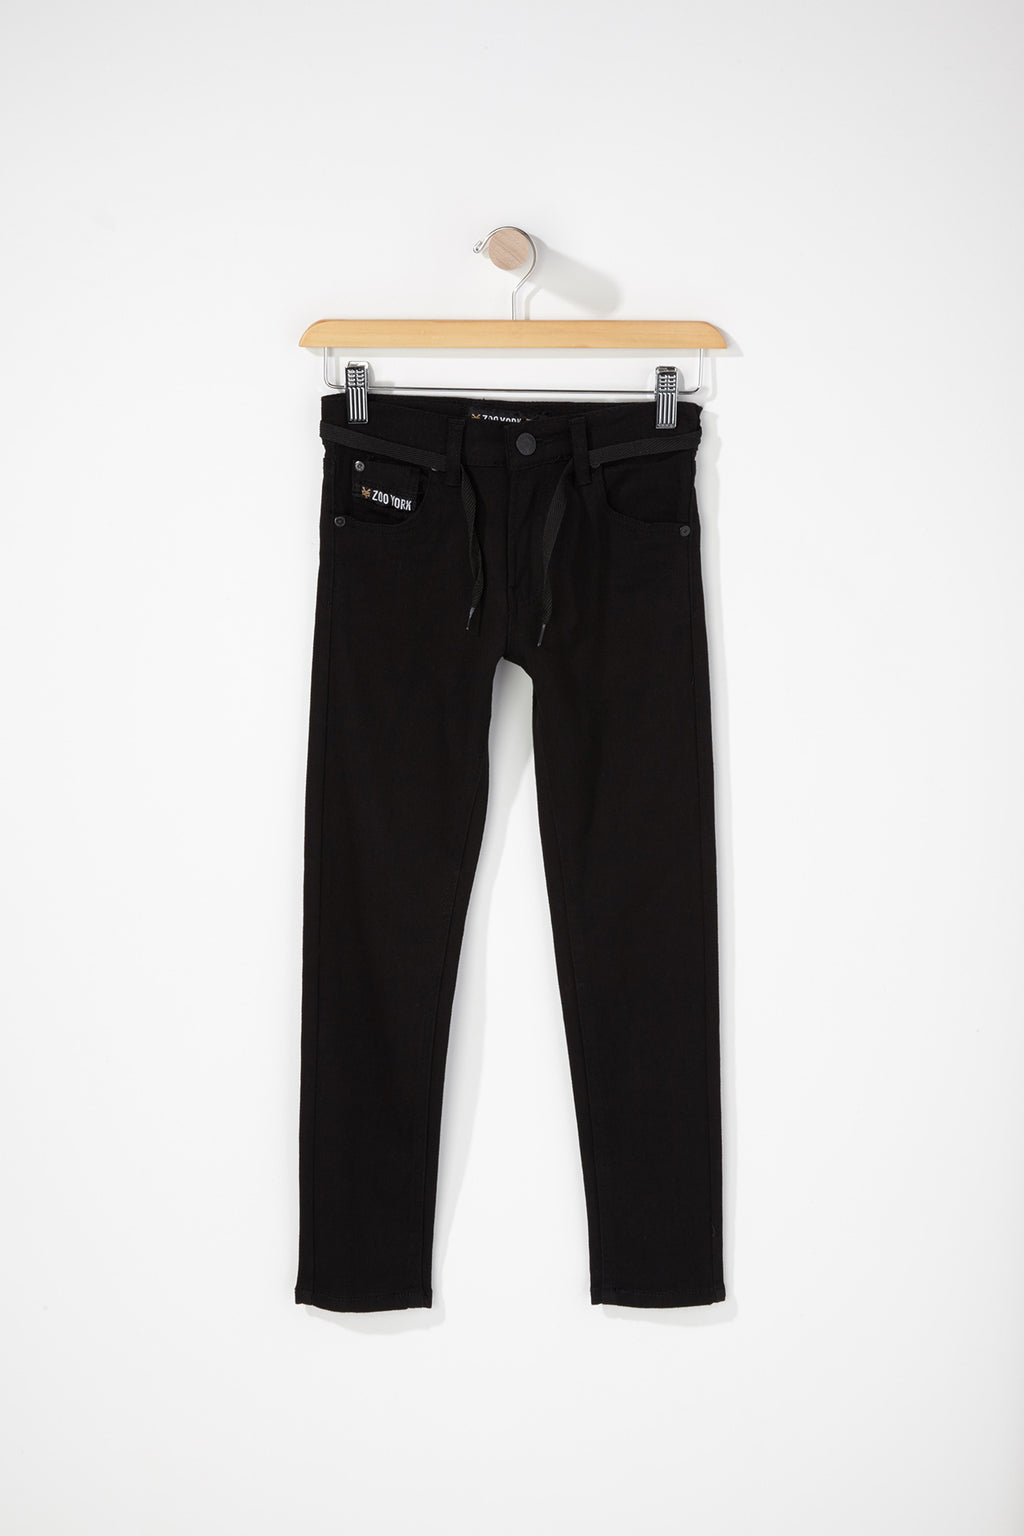 Zoo York Boys Skinniest Bull Denim Jeans